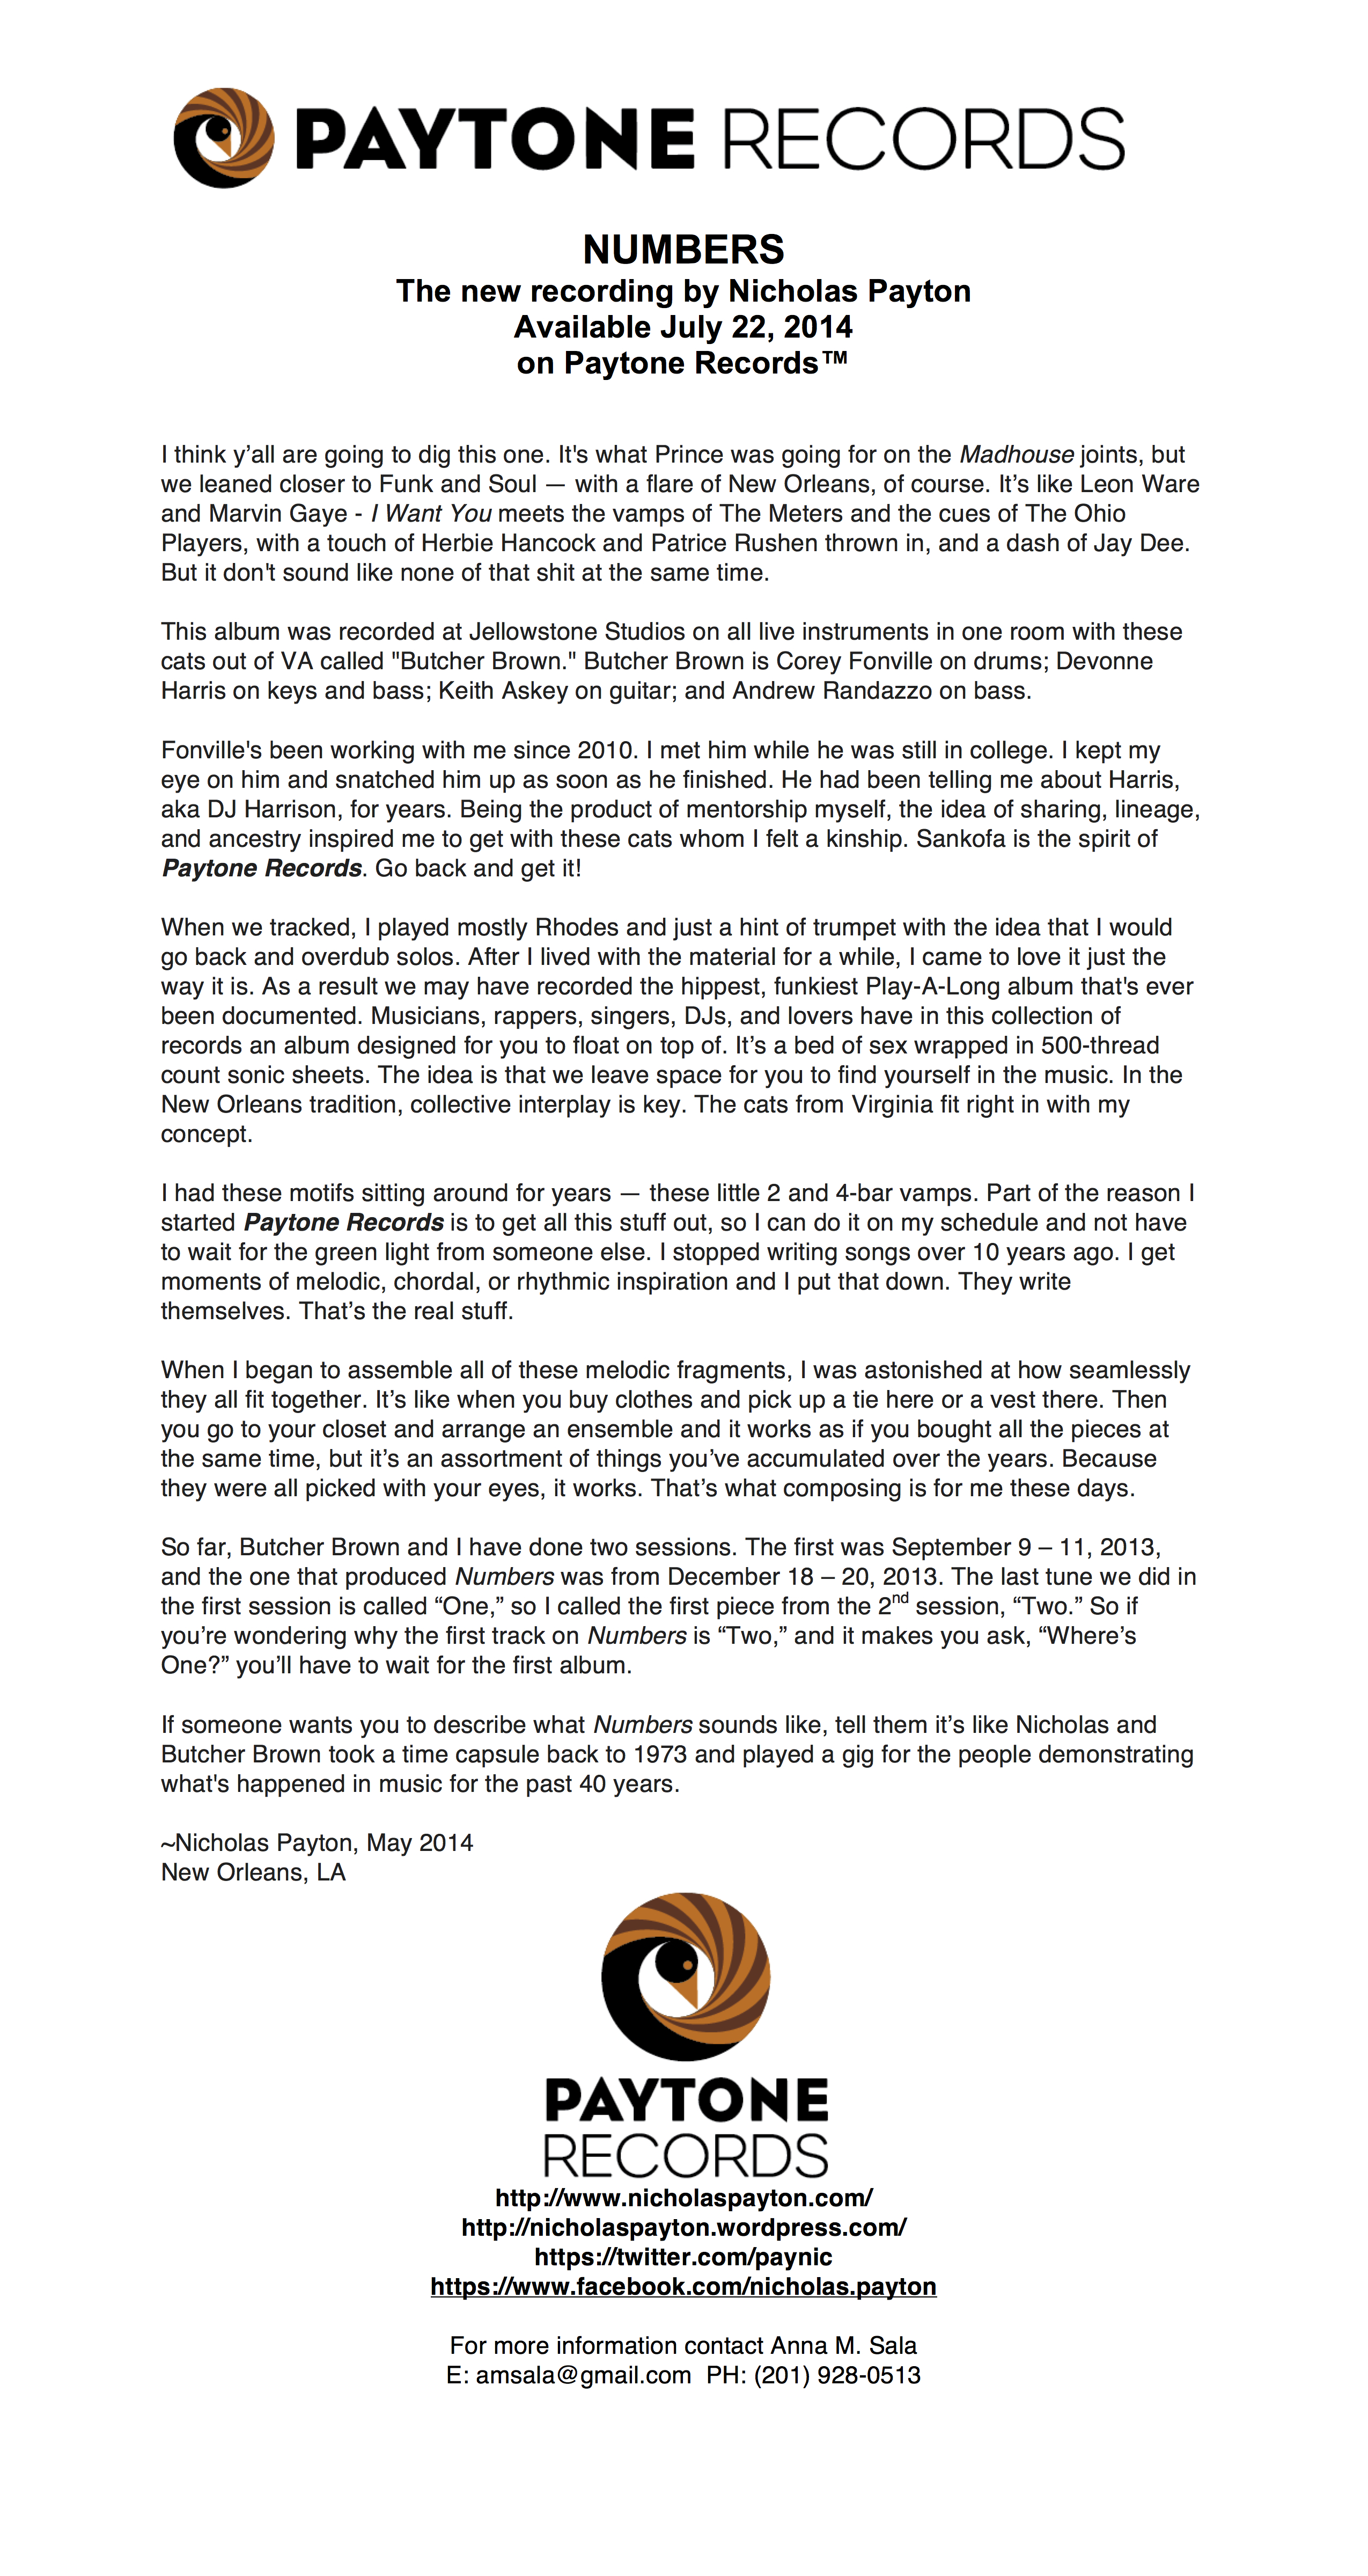 """Press Release for """"Numbers,"""" by Nicholas Payton ft. Butcher Brown ..."""